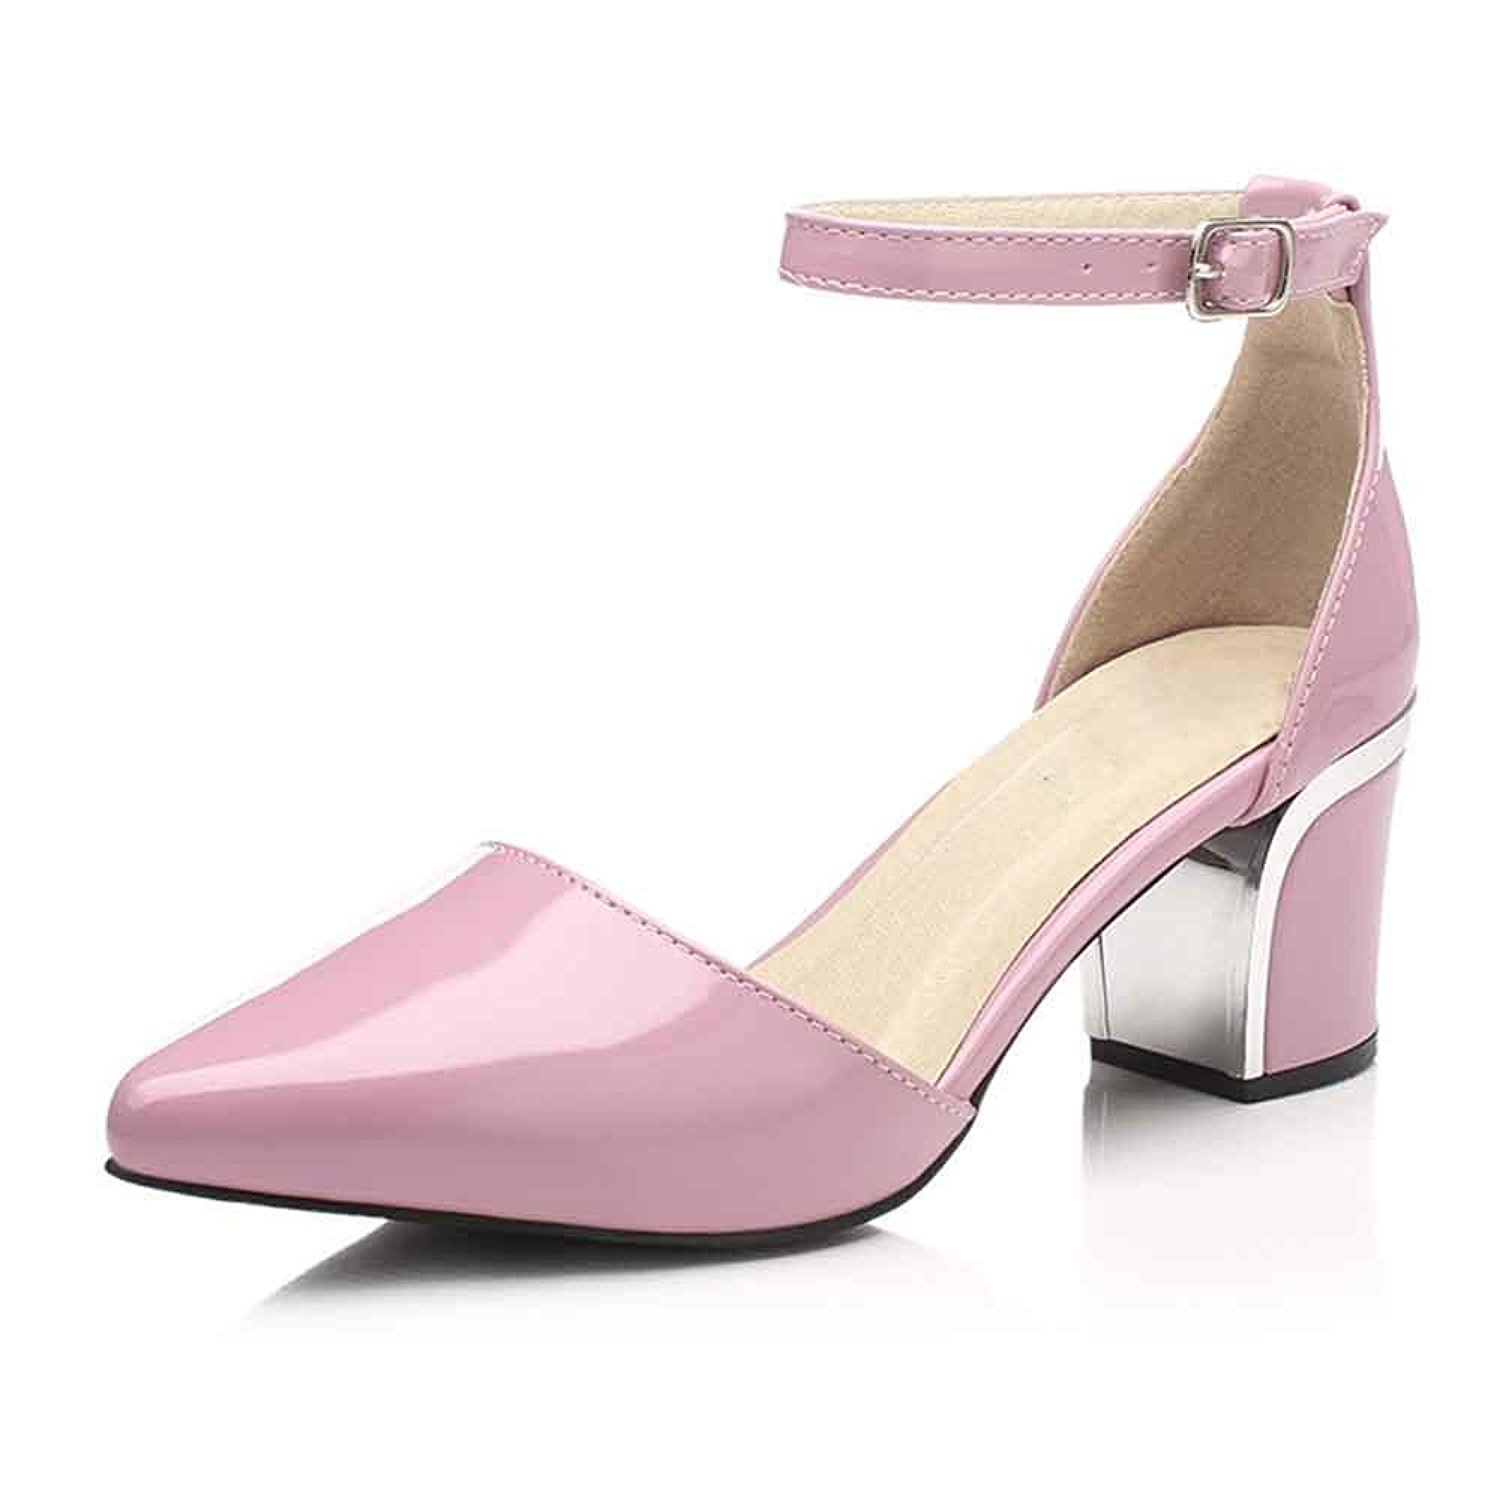 996d26115f996 Get Quotations · LIURUIJIA Women's Low Heel Dress Pump Shoes Chunky Block  Heel ¨C Pointed Toe Ankle Strap